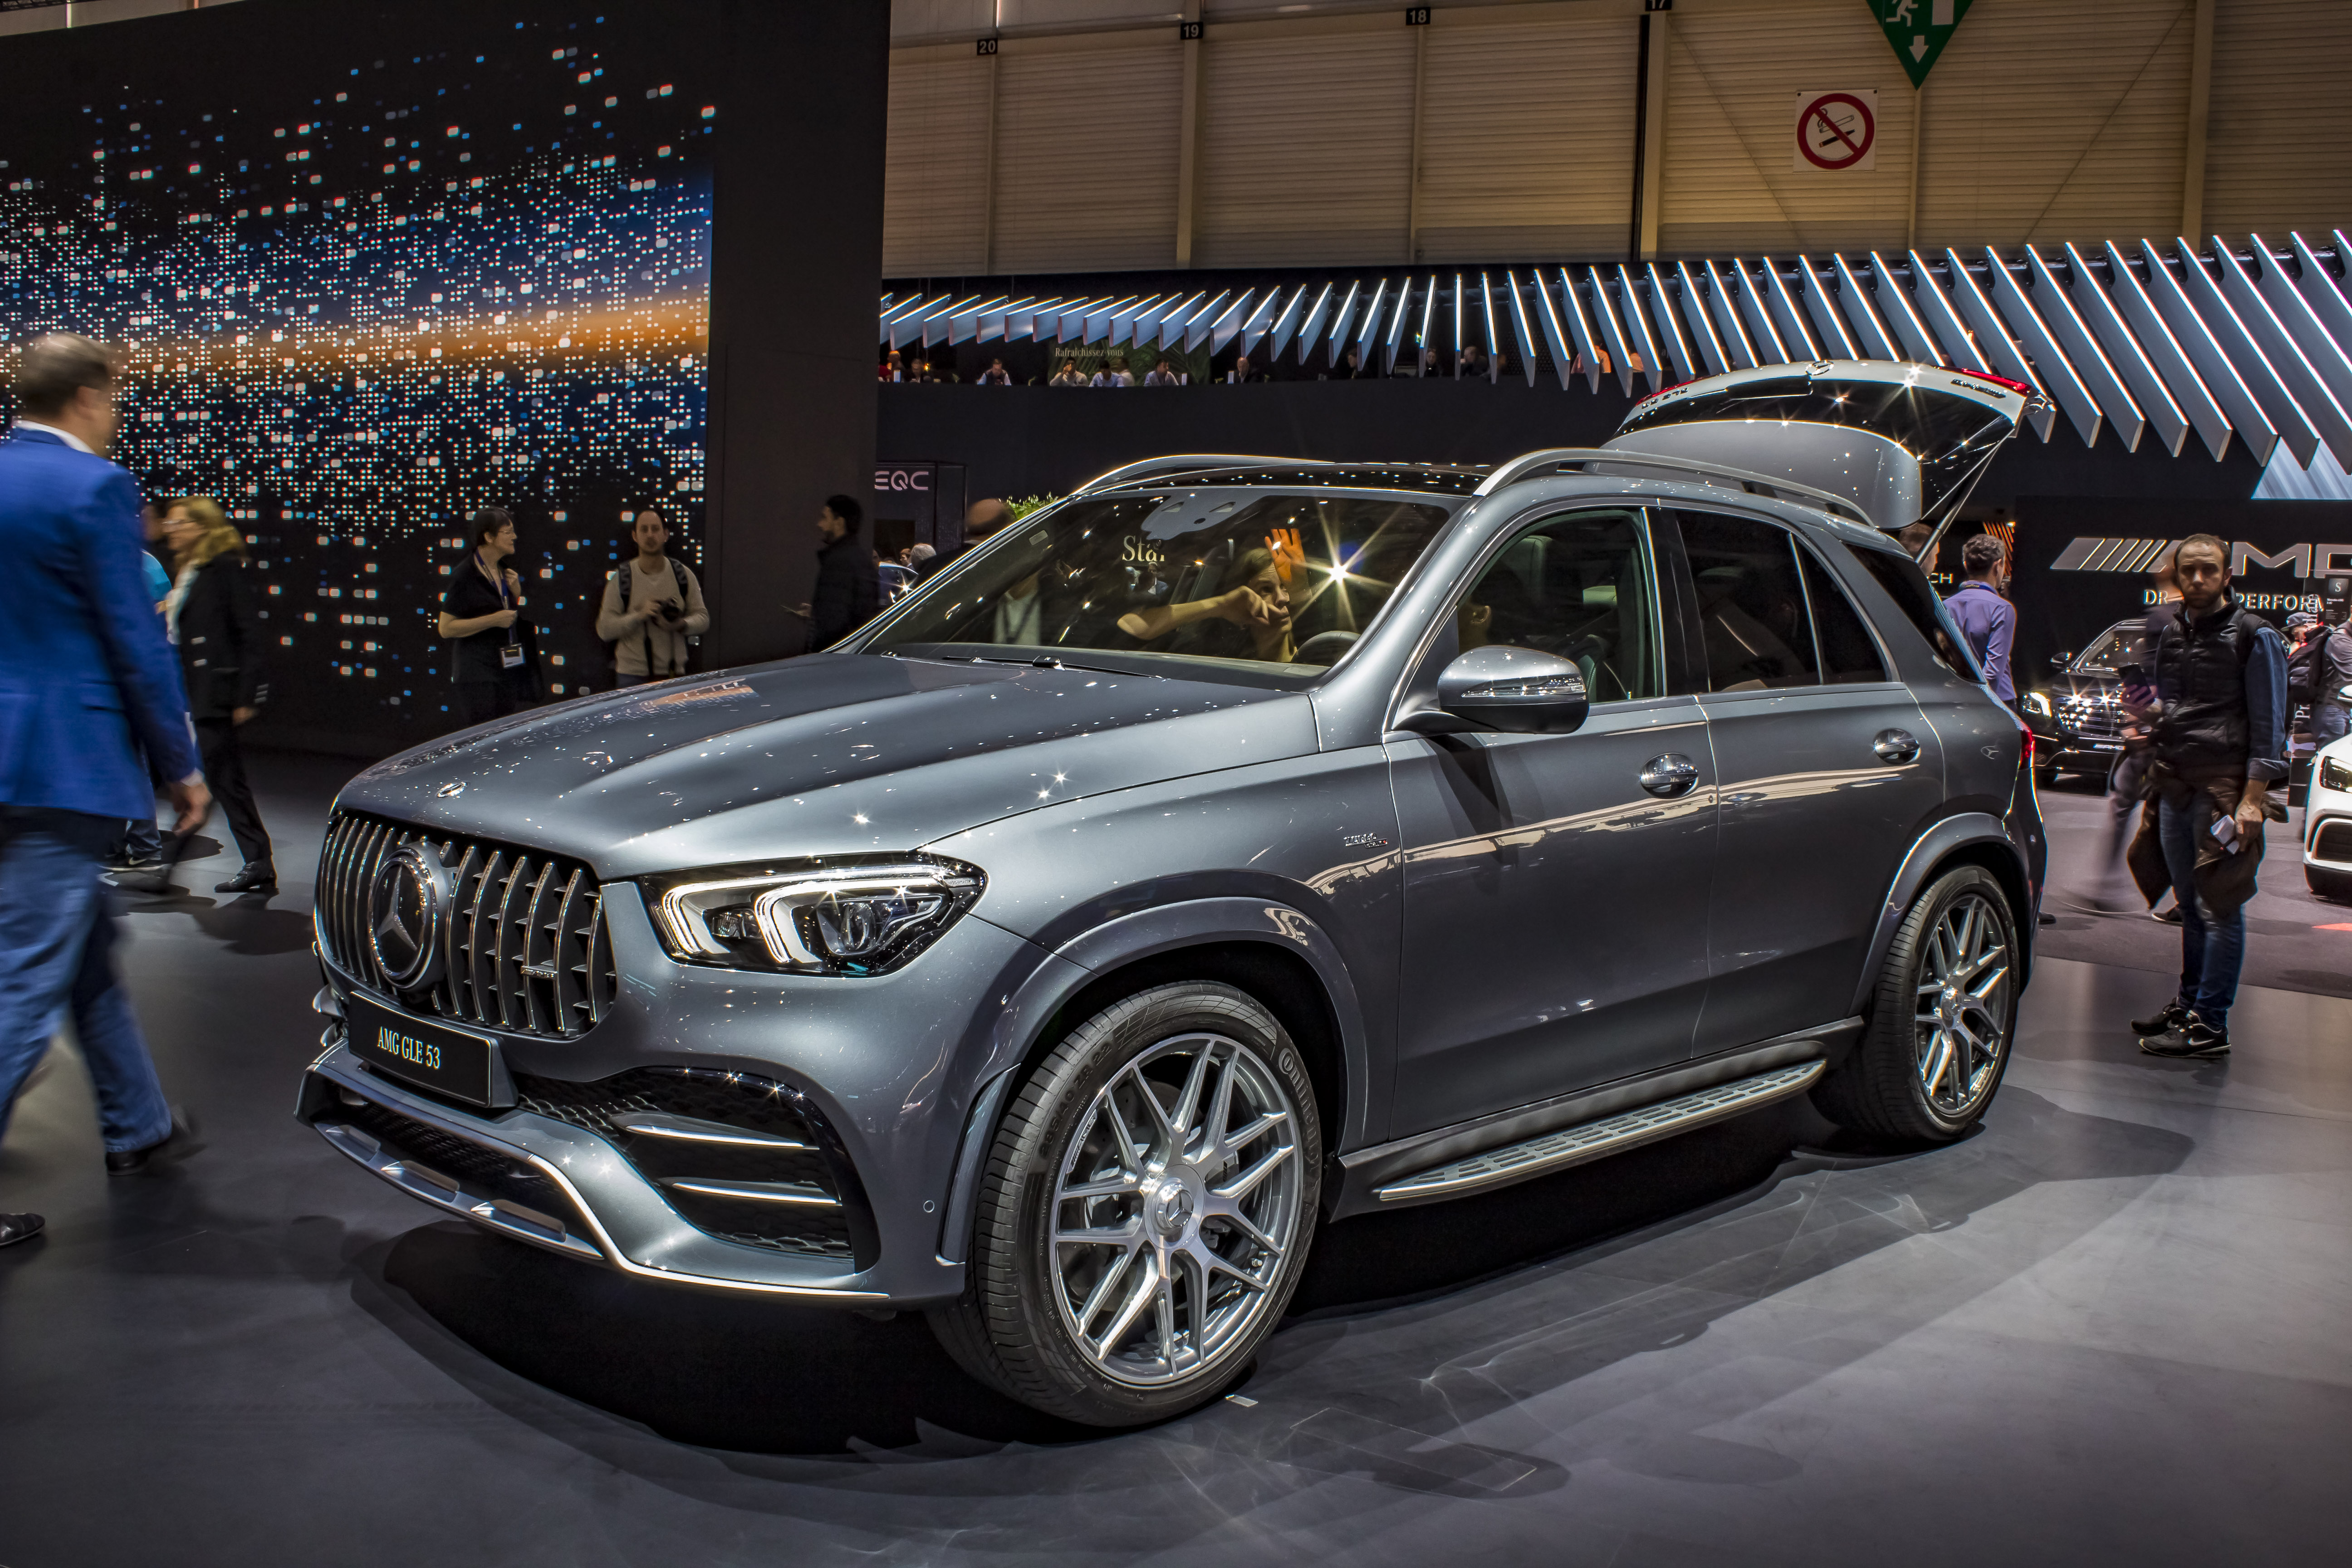 2020 Mercedes-AMG GLE53 Pictures, Photos, Wallpapers ...